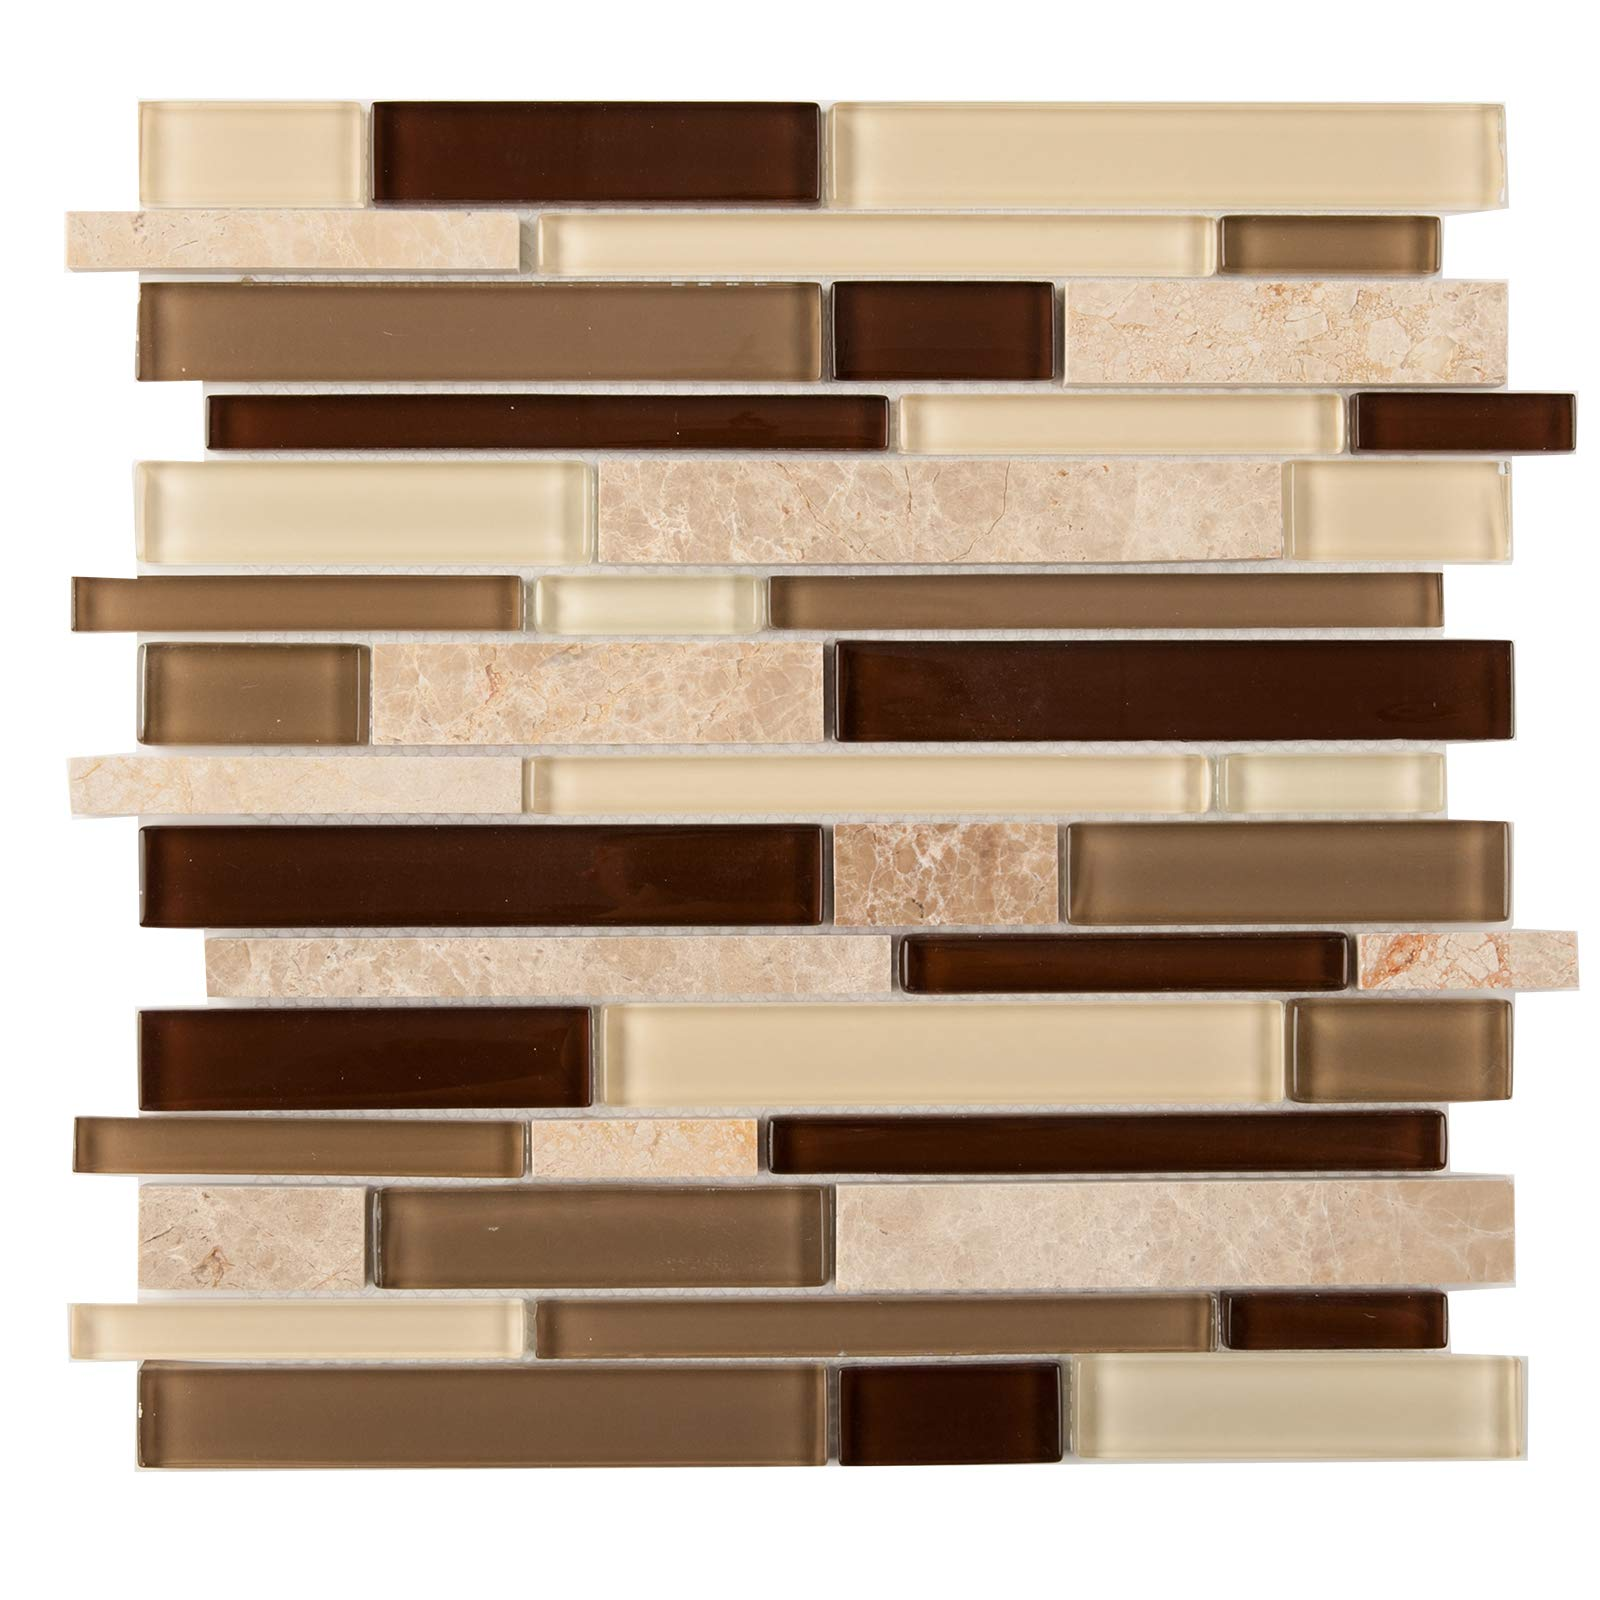 Glass and Stone Mosaic Tile, IL 805, Mixed Strips, 12''x12''x1/4'' (Box of 5 Sheets)